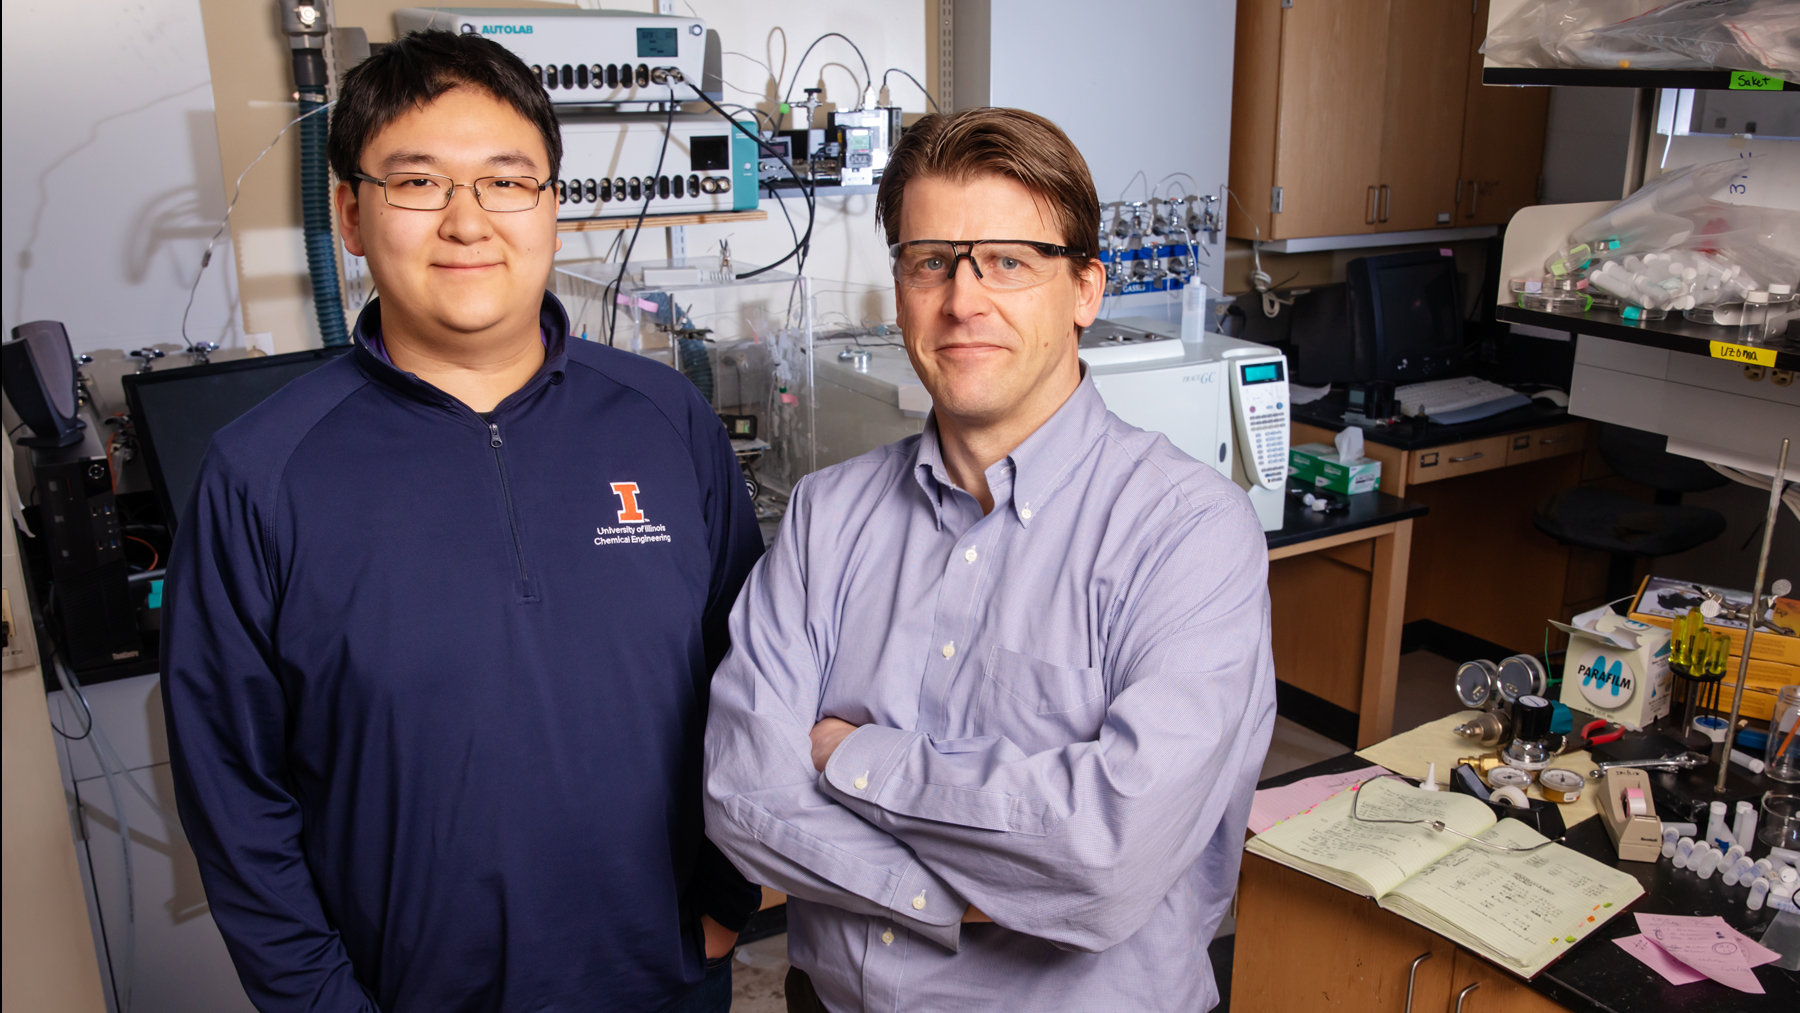 Chemical and biomolecular engineering professor Paul Kenis and graduate student Shawn Lu are co-authors of this study. Photo by Brian Stauffer